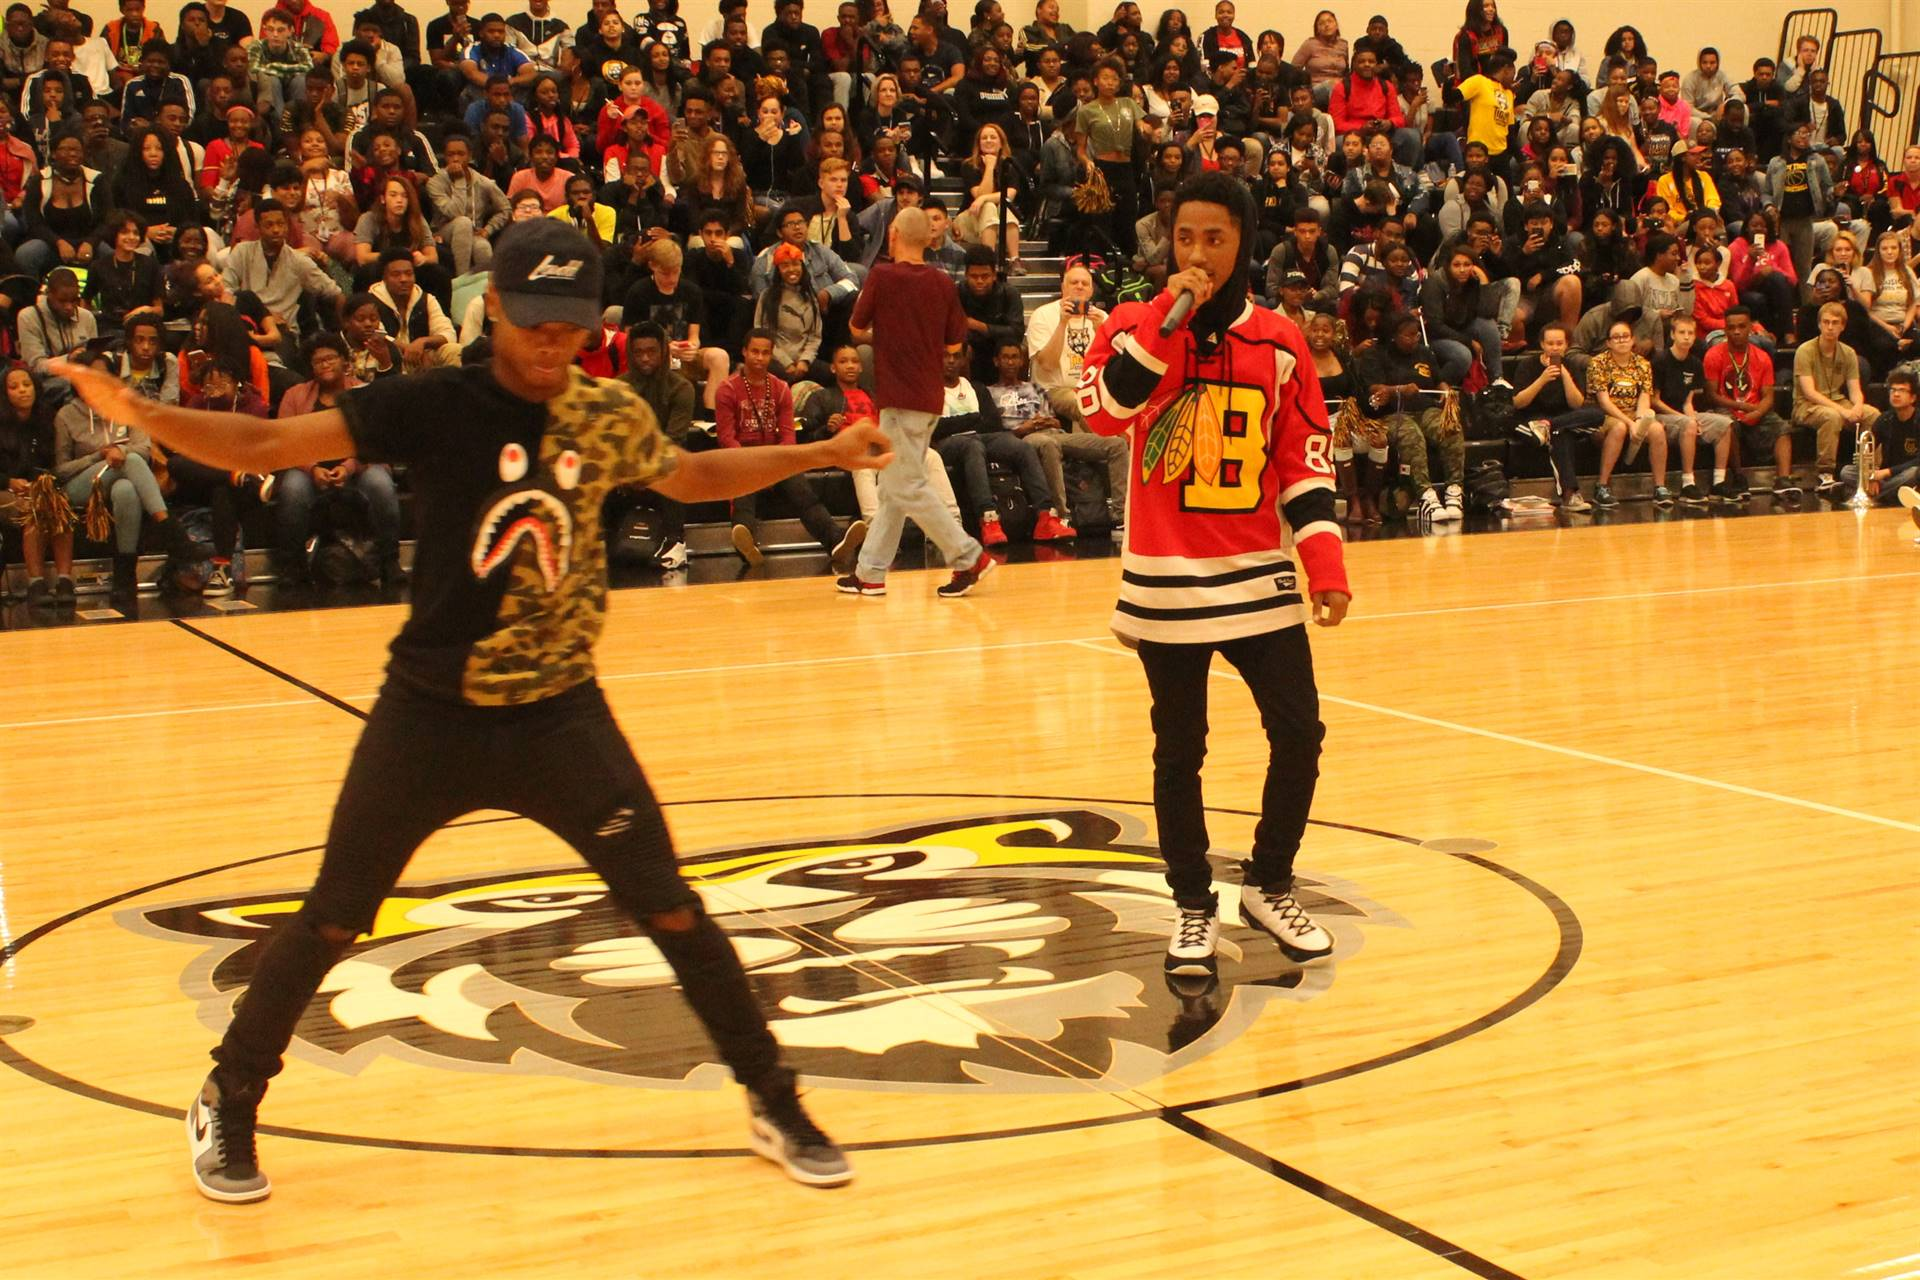 Dance off Competitors